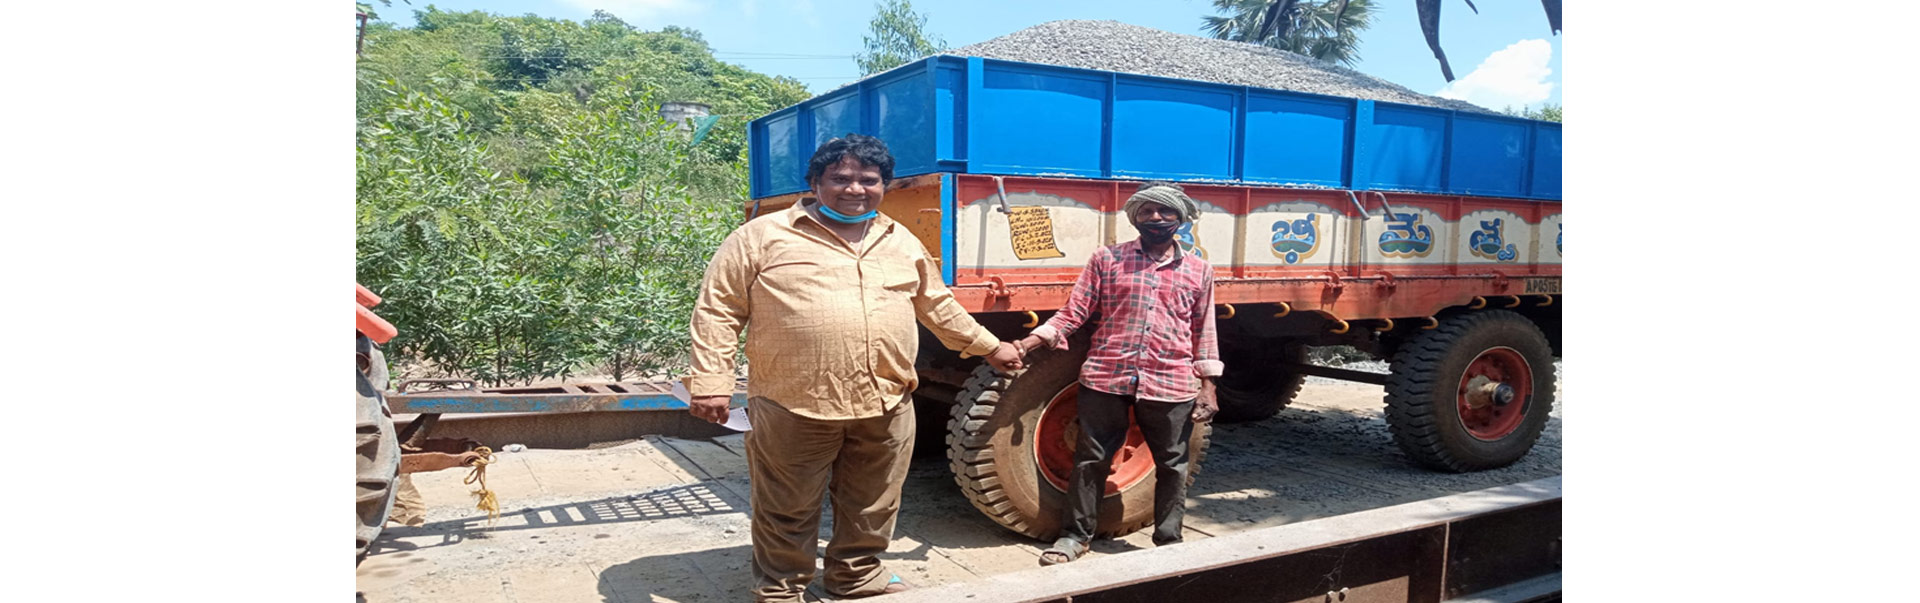 sastry real estates for supply materials cheaper than lorry